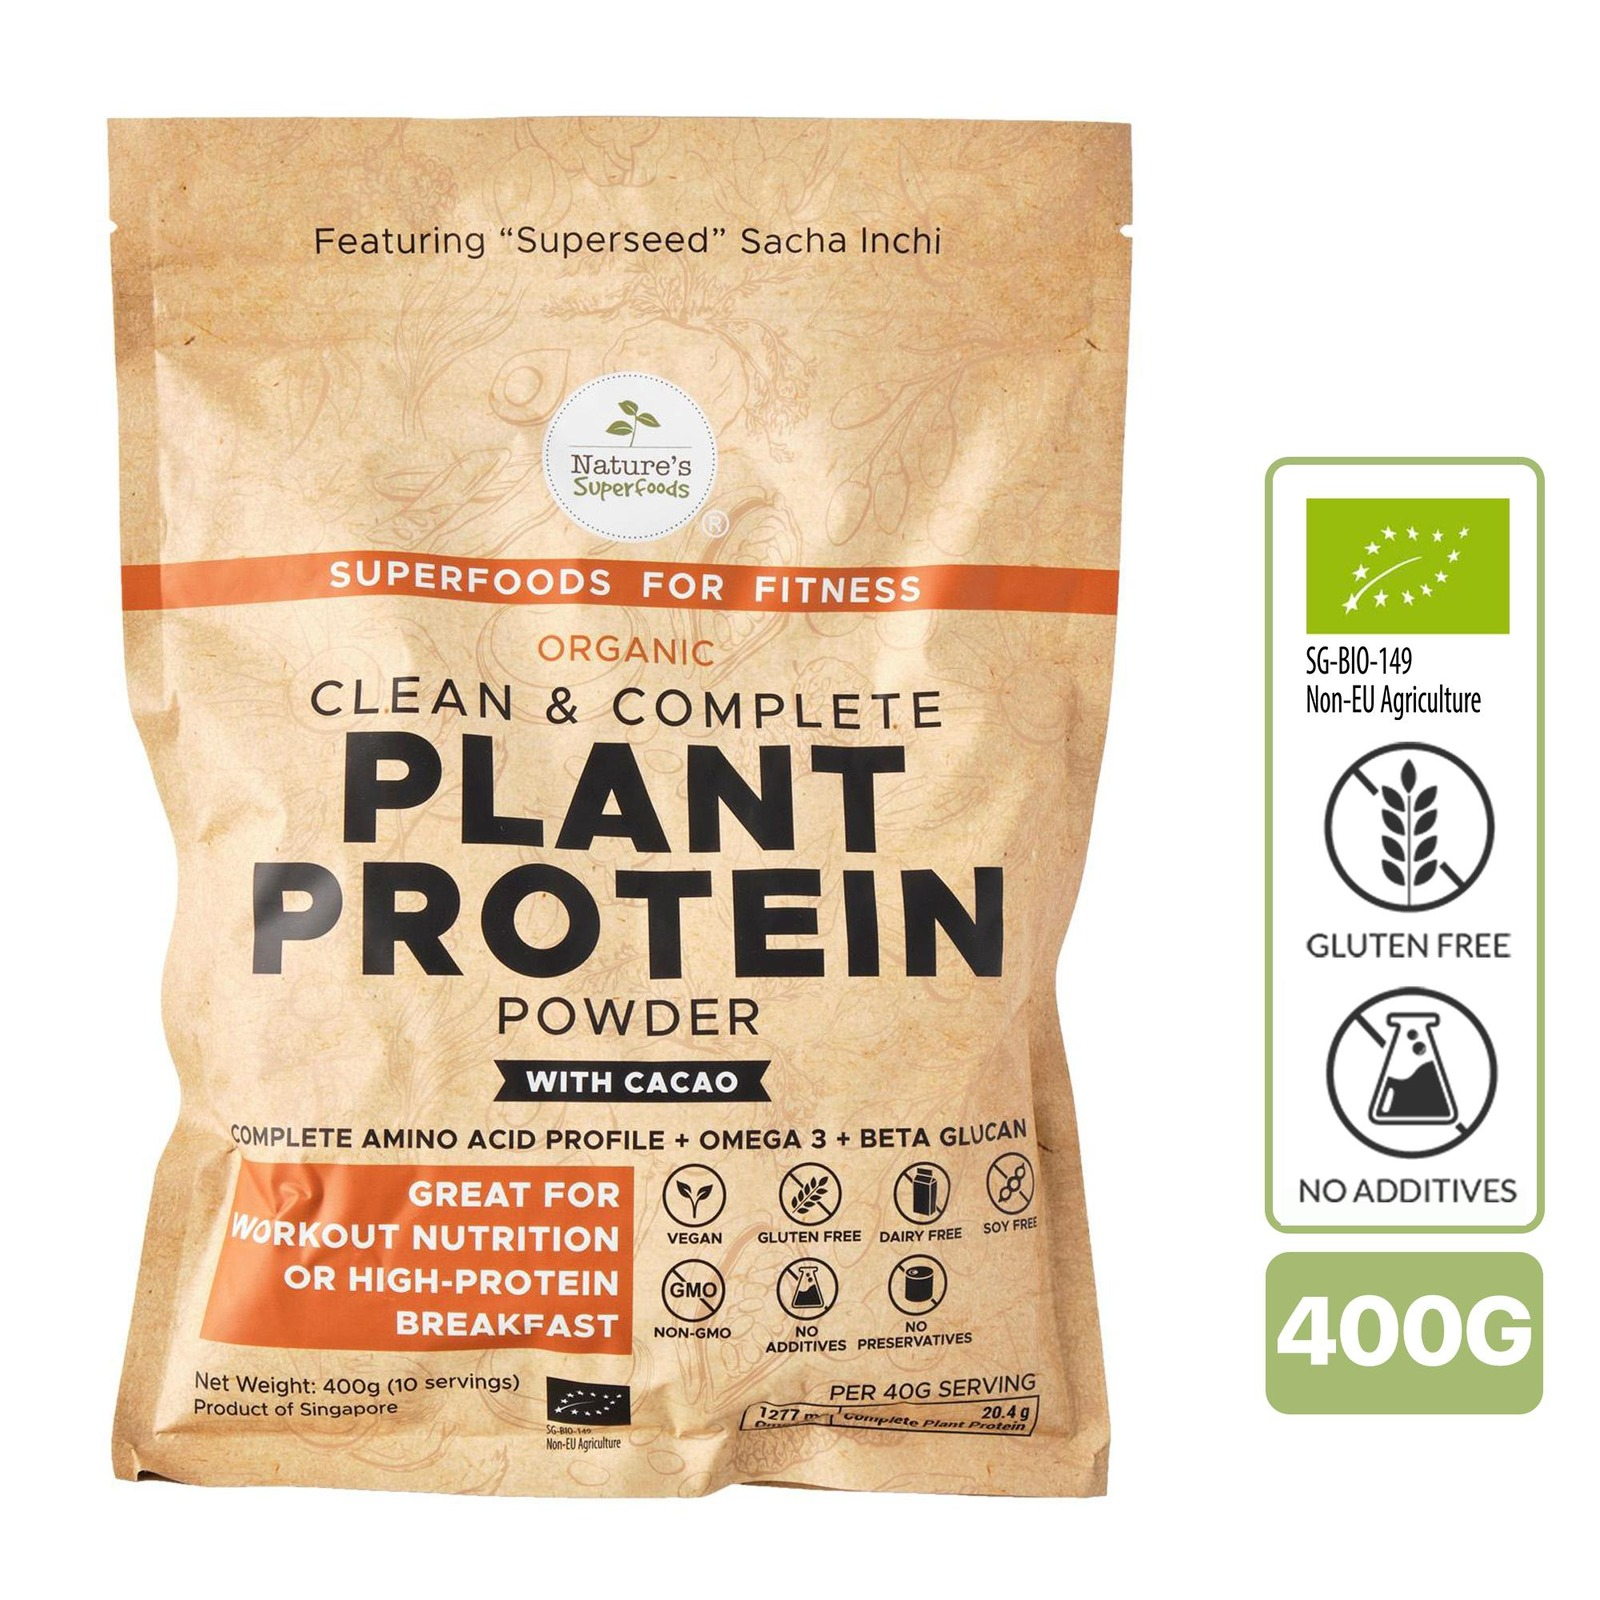 Nature's Superfoods Organic Plant Protein Powder (with Cacao)